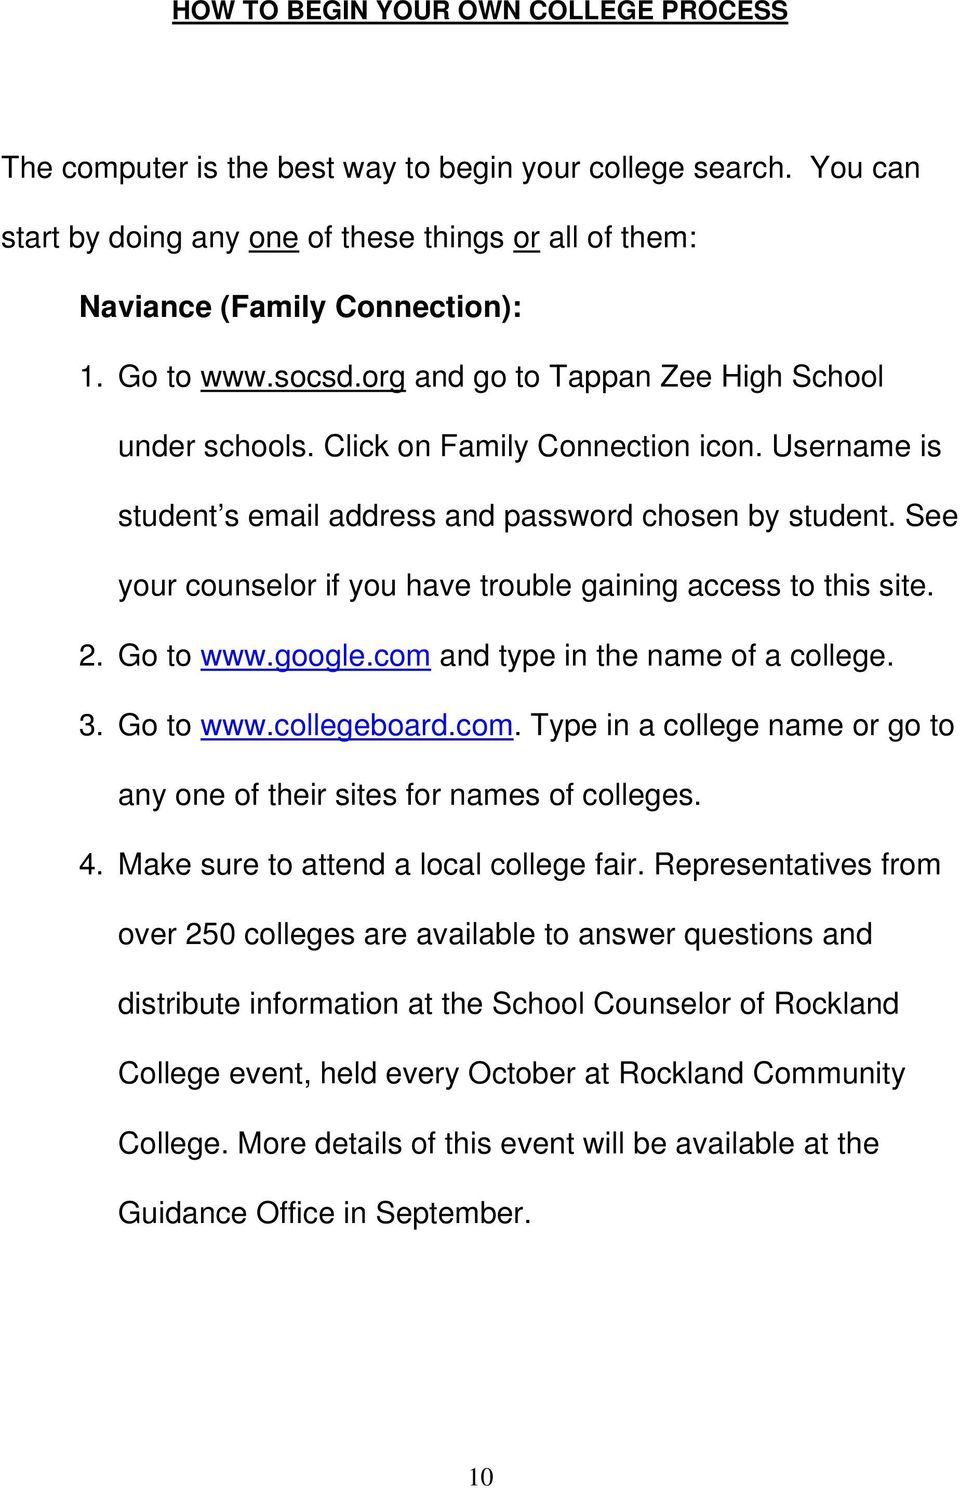 See your counselor if you have trouble gaining access to this site. 2. Go to www.google.com and type in the name of a college. 3. Go to www.collegeboard.com. Type in a college name or go to any one of their sites for names of colleges.